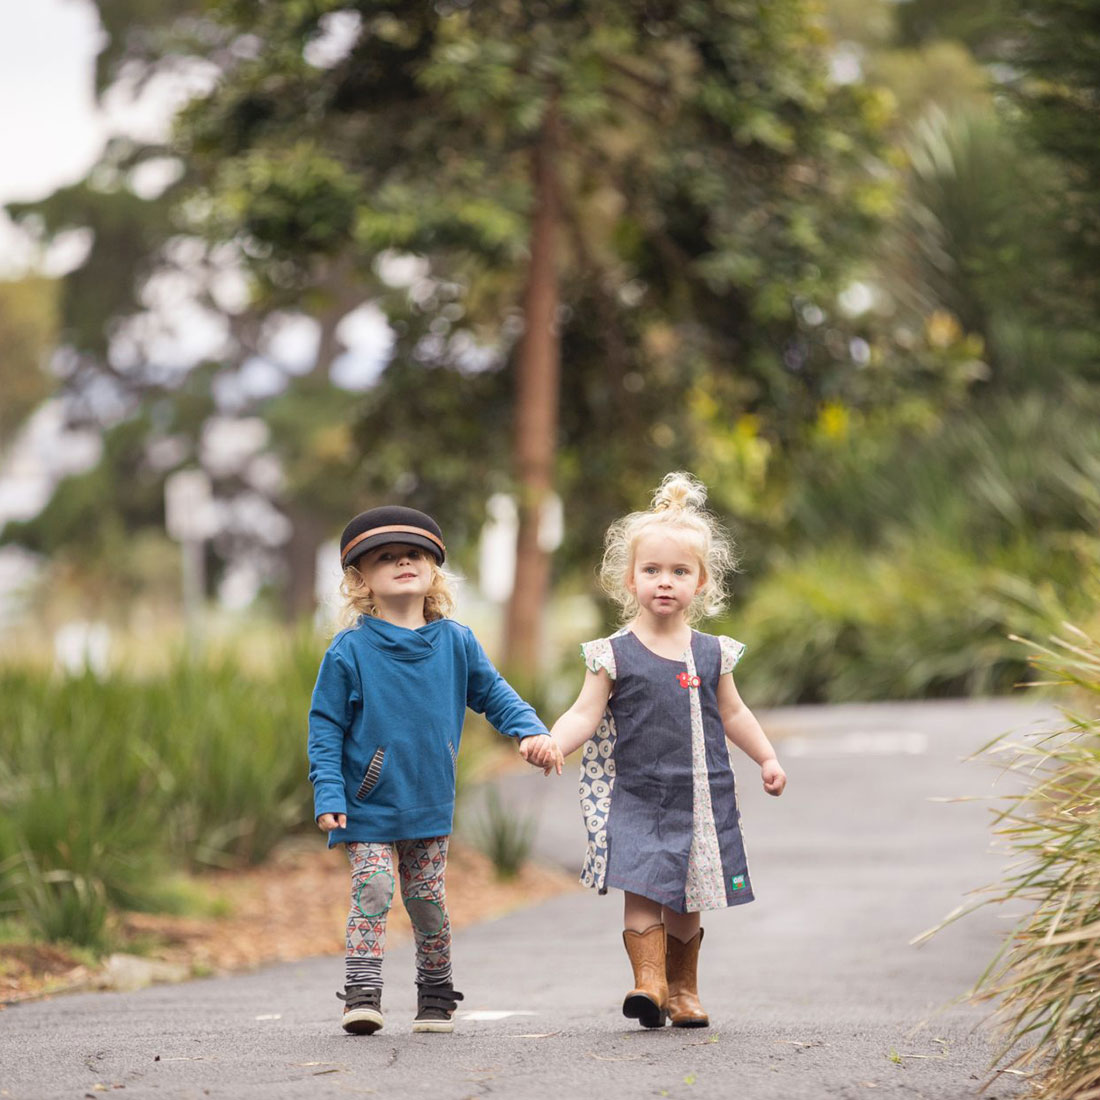 A three to four year old boy and girl model Oishi-m clothing while walking down a path in a park holding hands.